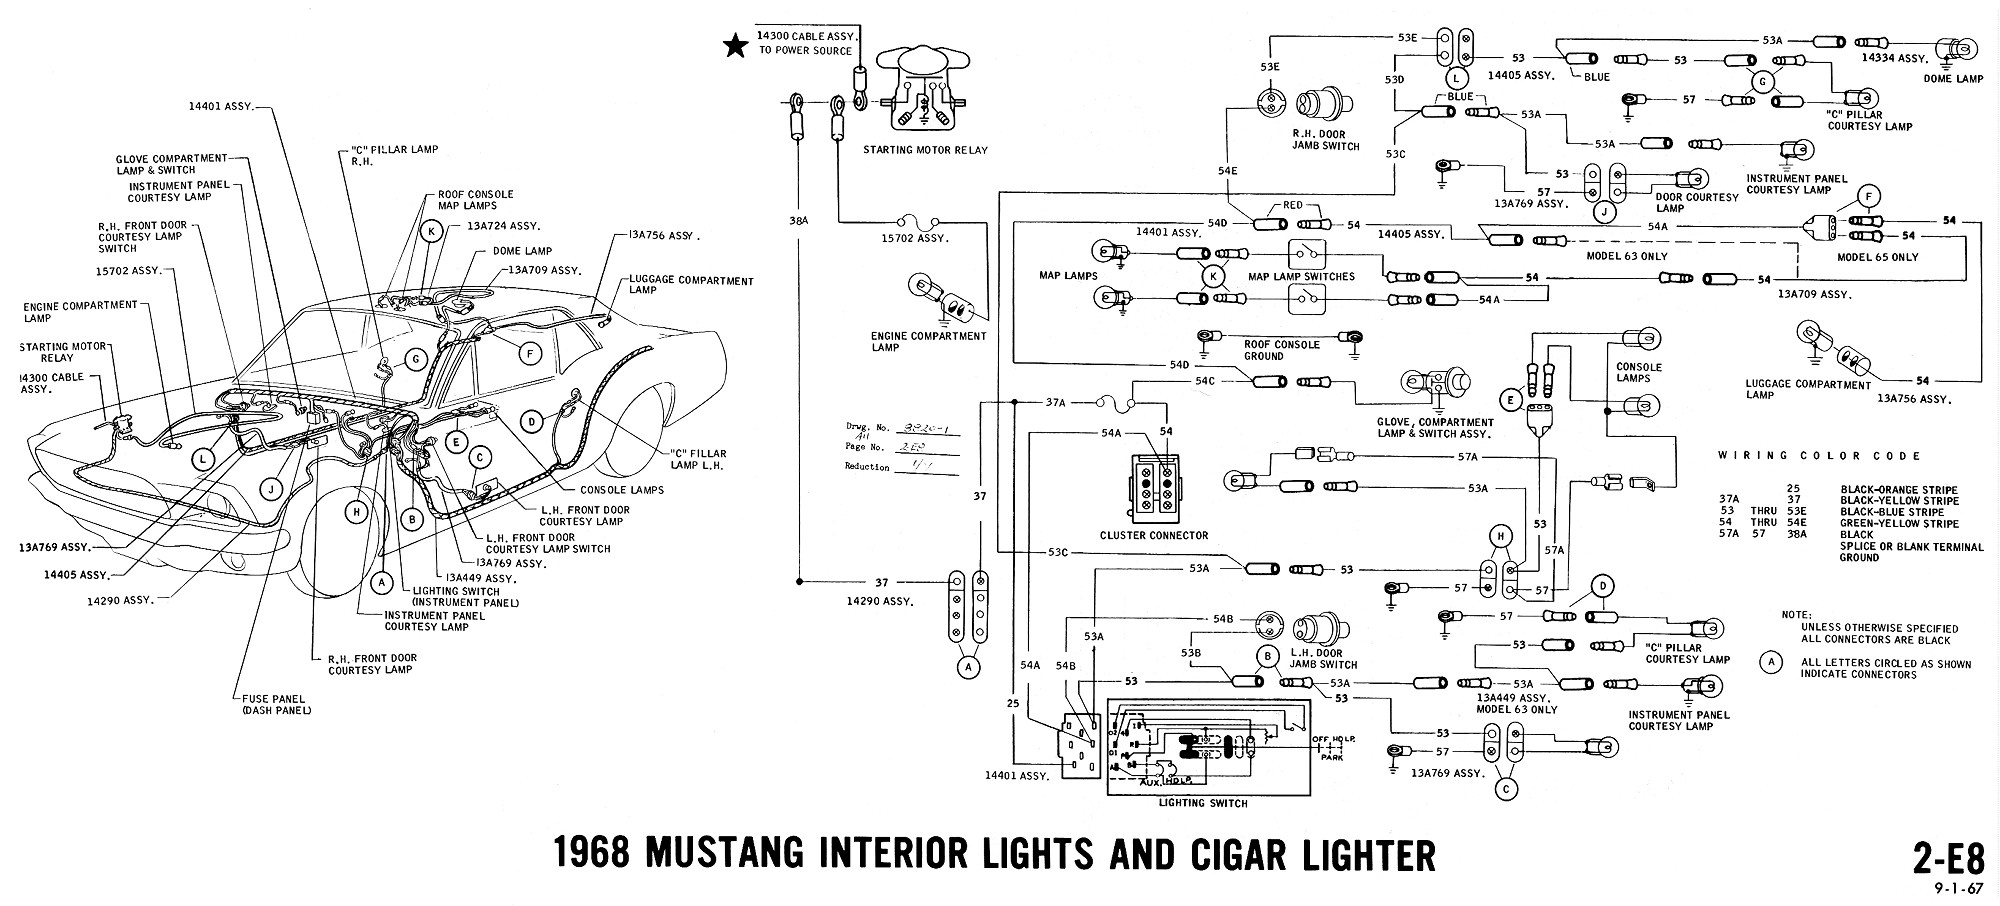 1968 mustang wiring diagram interior lights cigar lighter 1968 mustang wiring diagrams and vacuum schematics average joe 1966 mustang wiring diagrams at creativeand.co